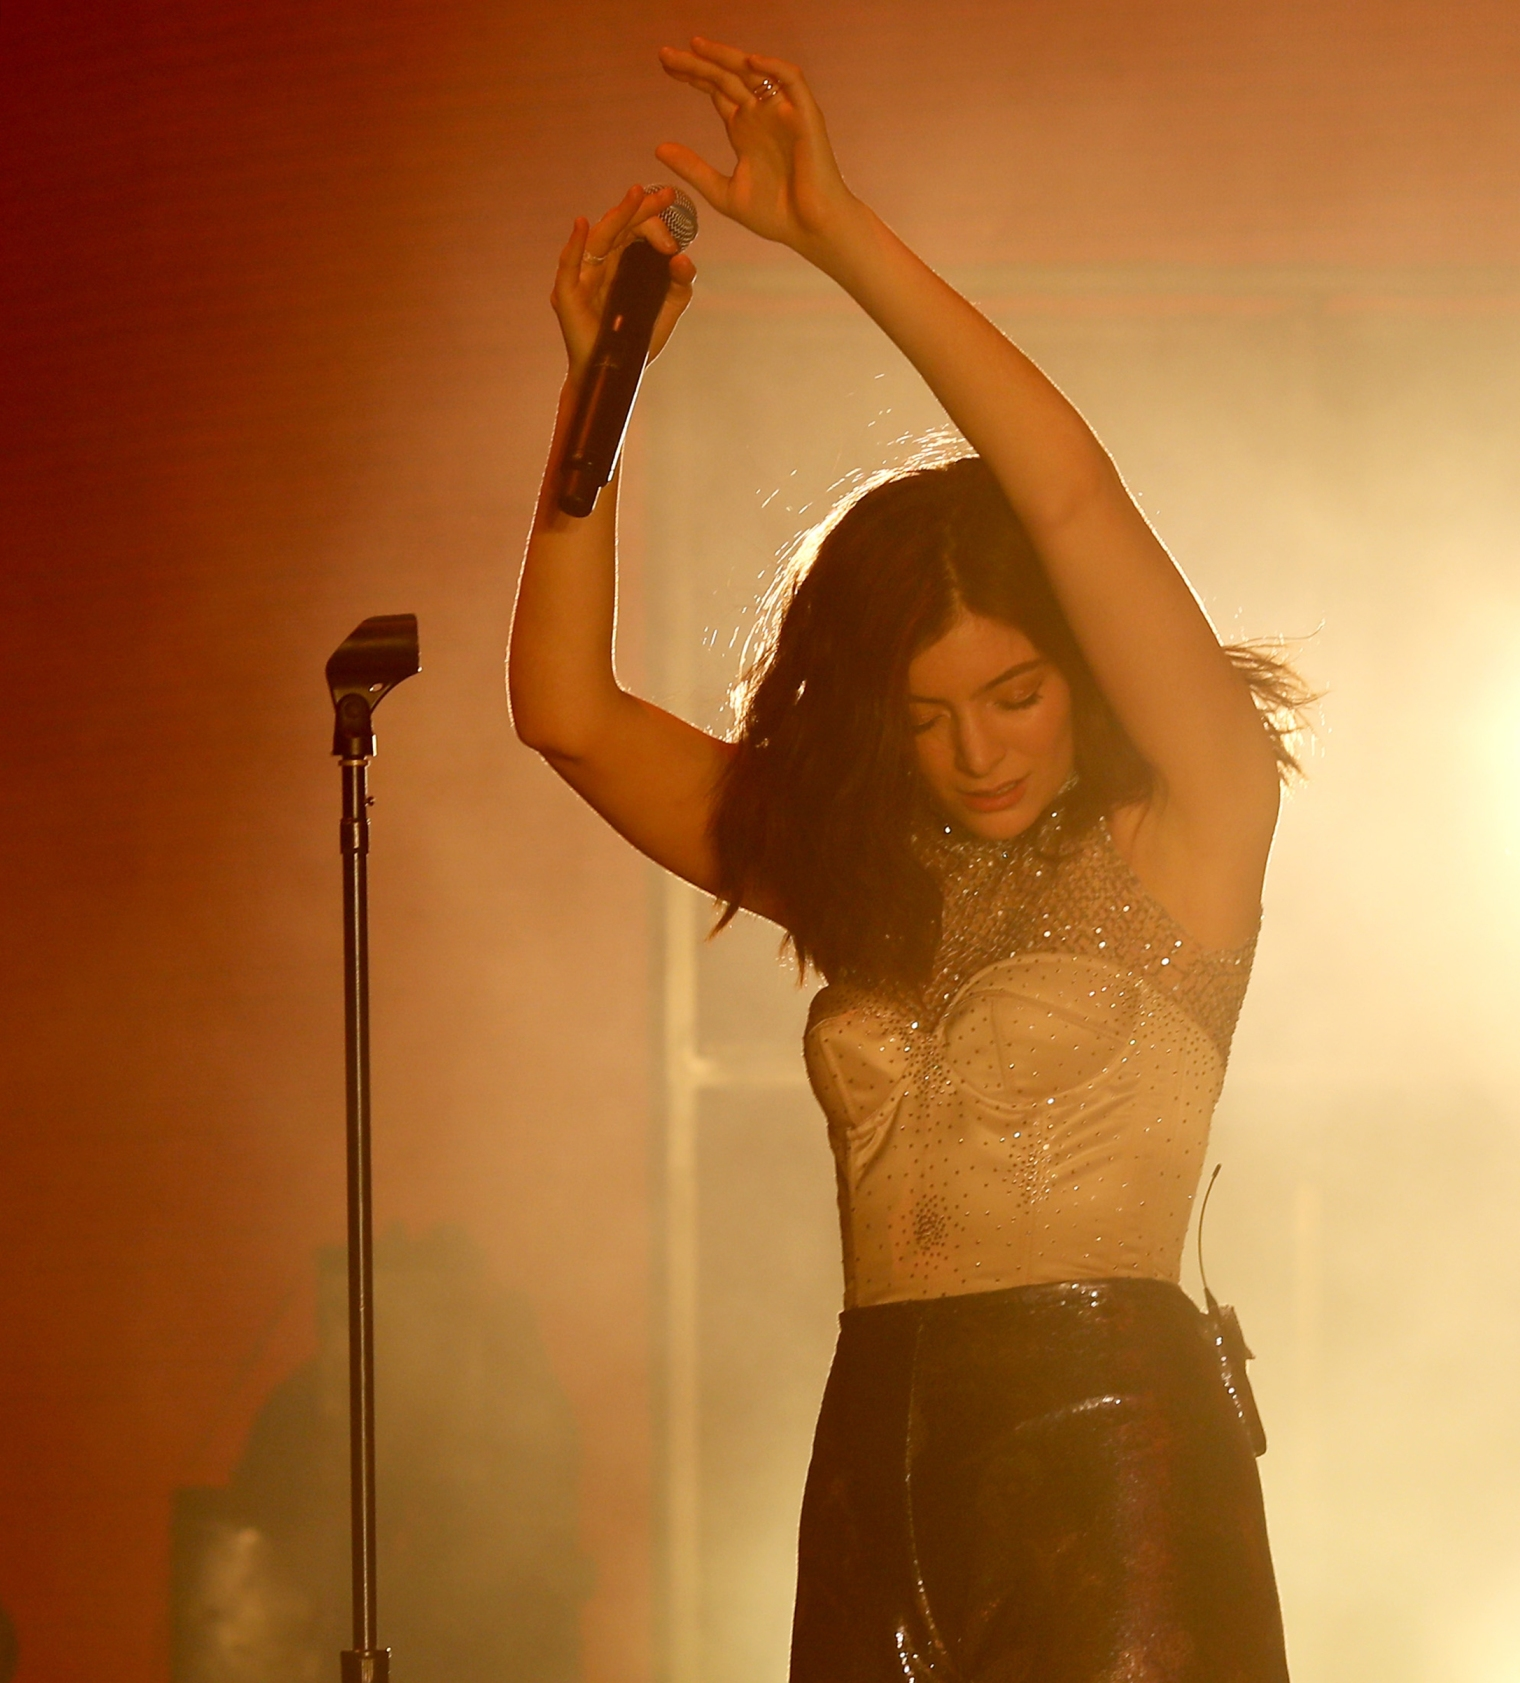 Christopher Polk—Getty Images Lorde performs at the music festival Coachella in mid-April